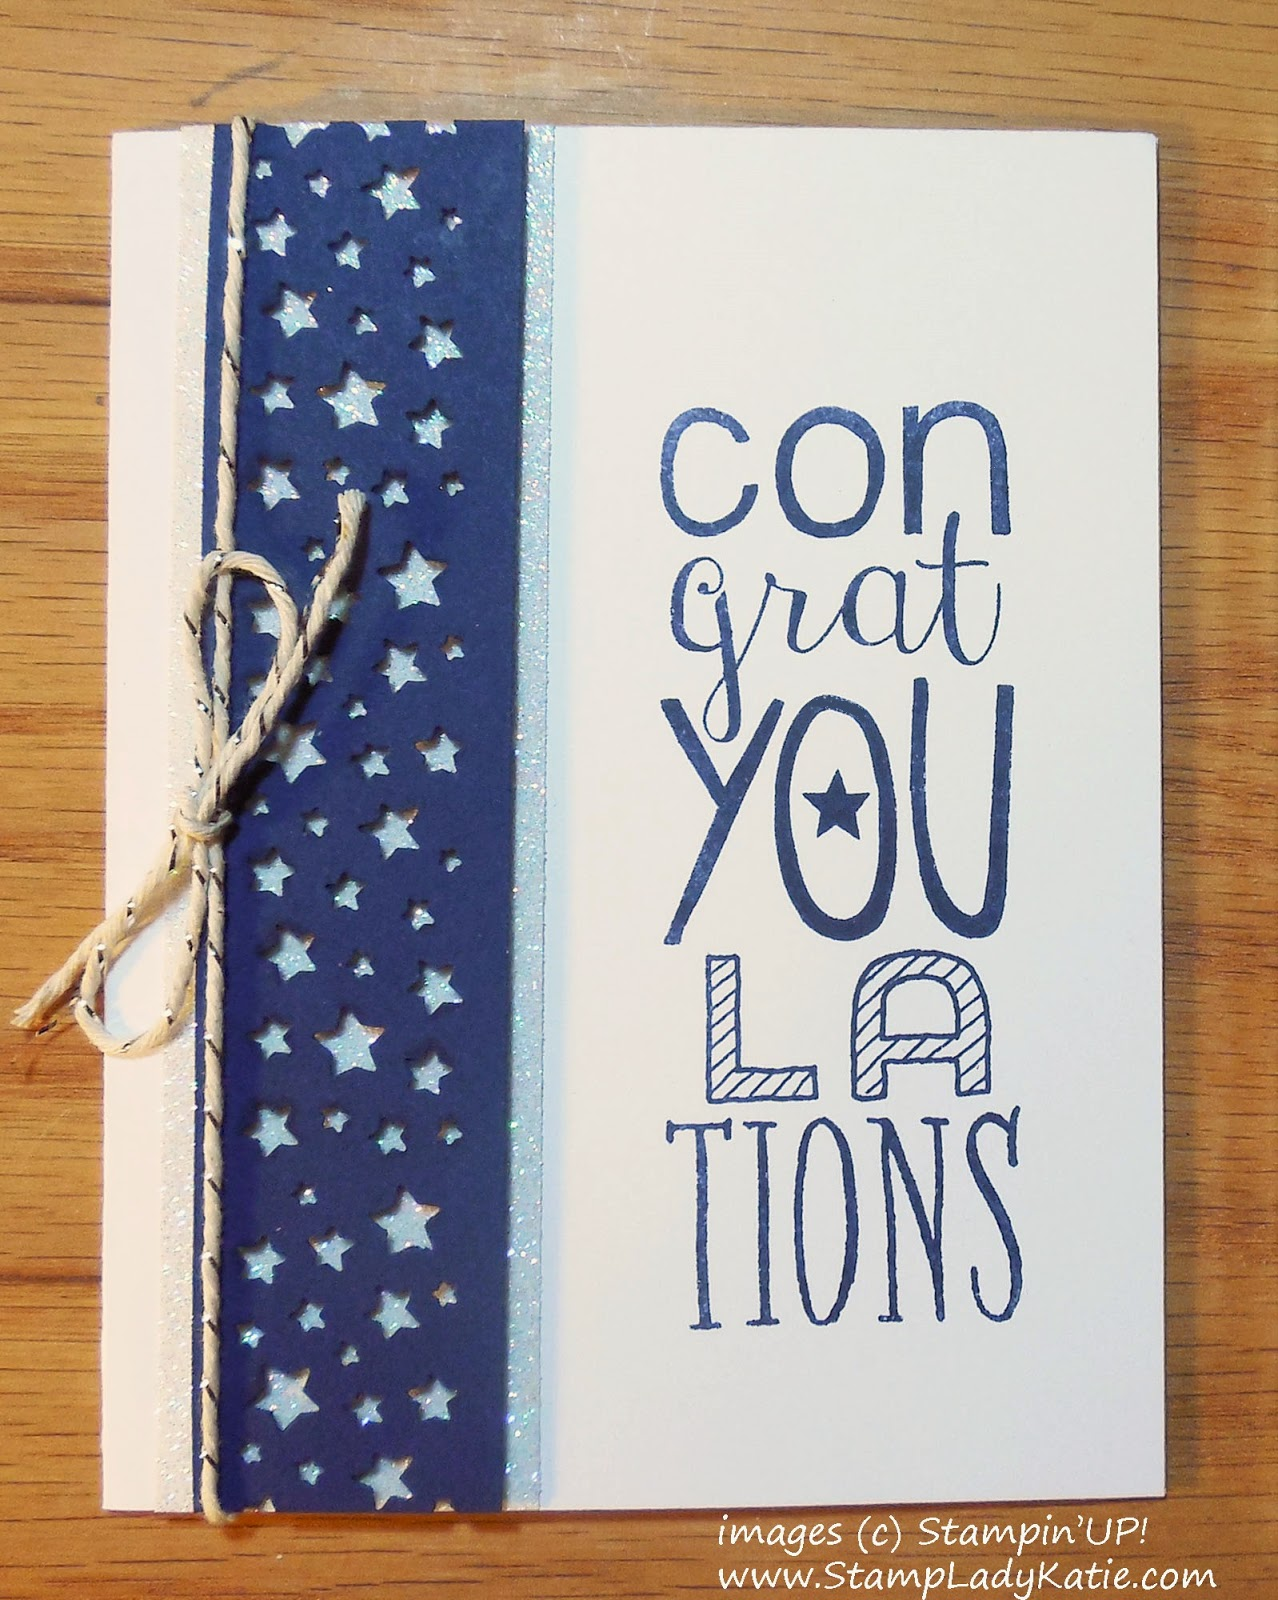 Congratulations Card made with Stampin'UP!'s Confetti Stars Border Punch and Bravo Stamp Set